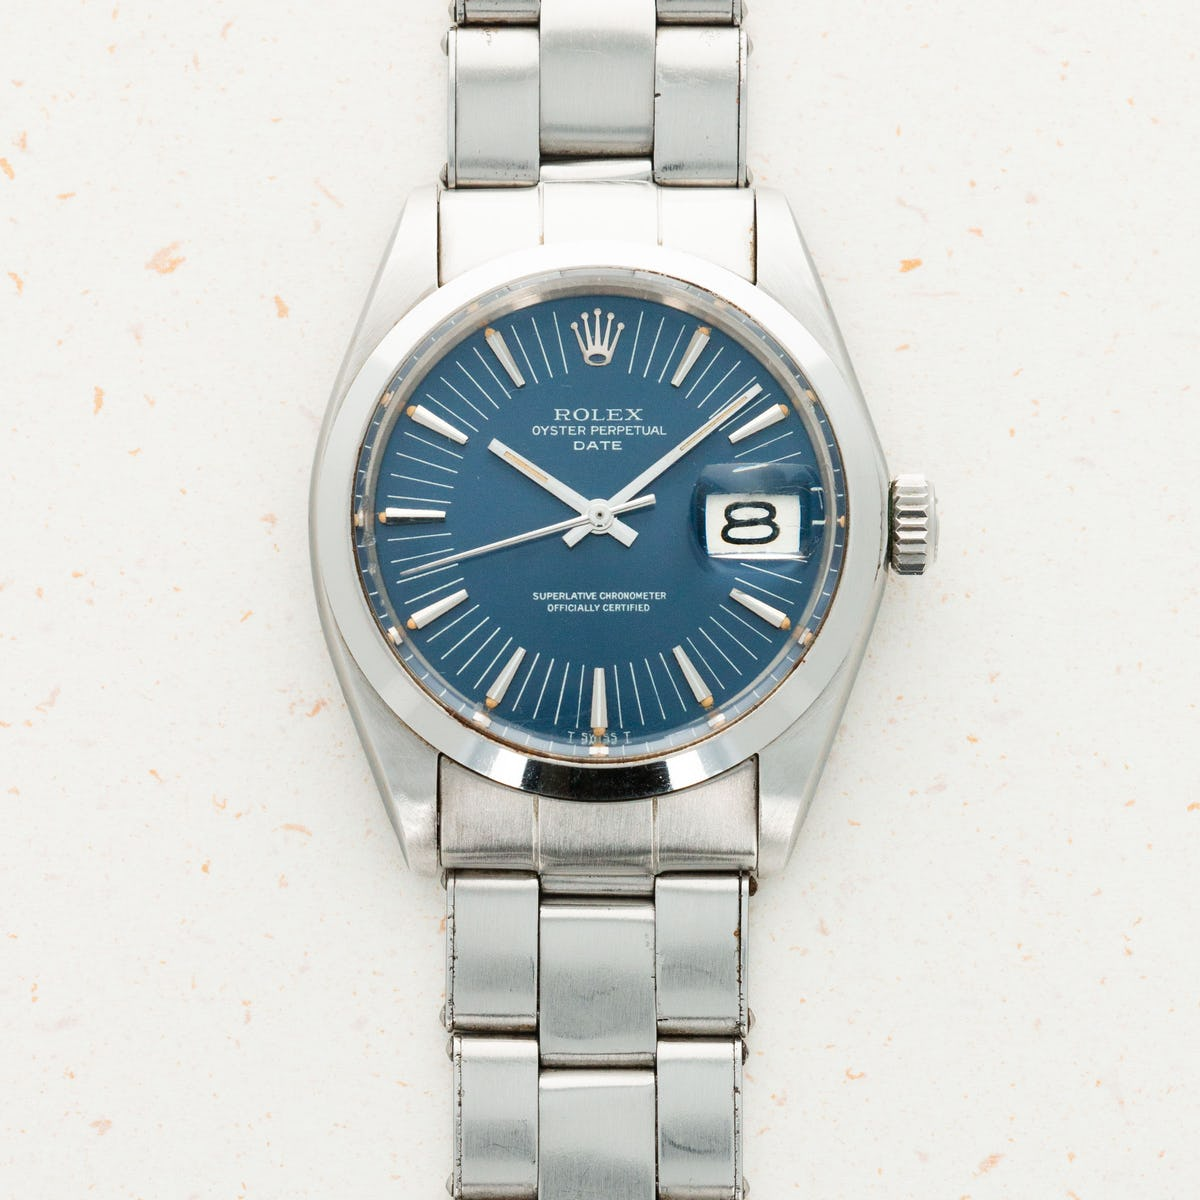 Thumbnail for Rolex Oyster Perpetual Date Long Index 1500